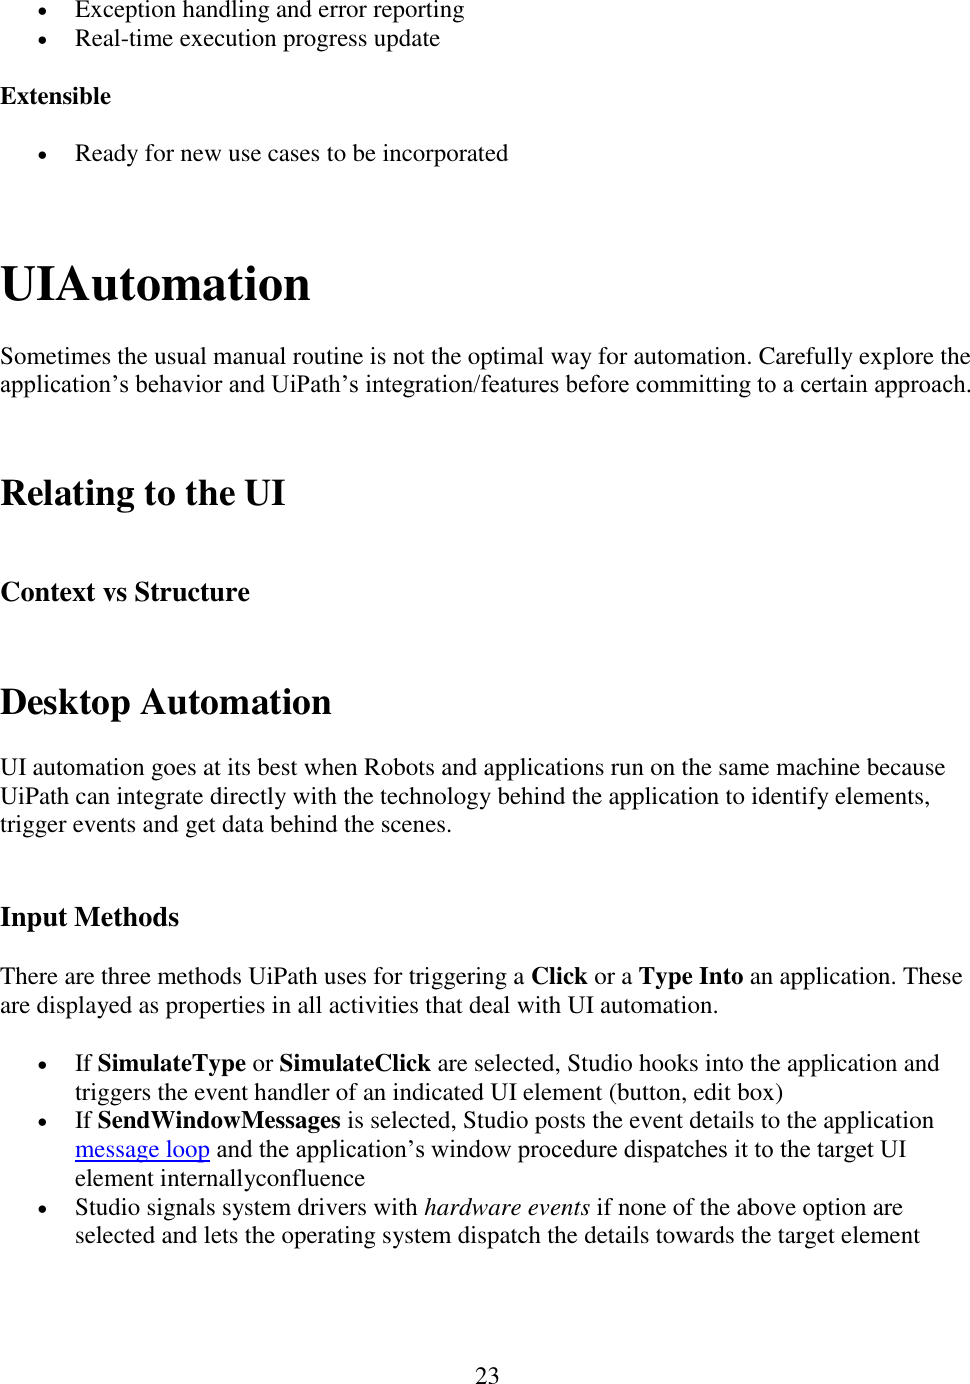 UiPath Automation Best Practice Guide Ui Path